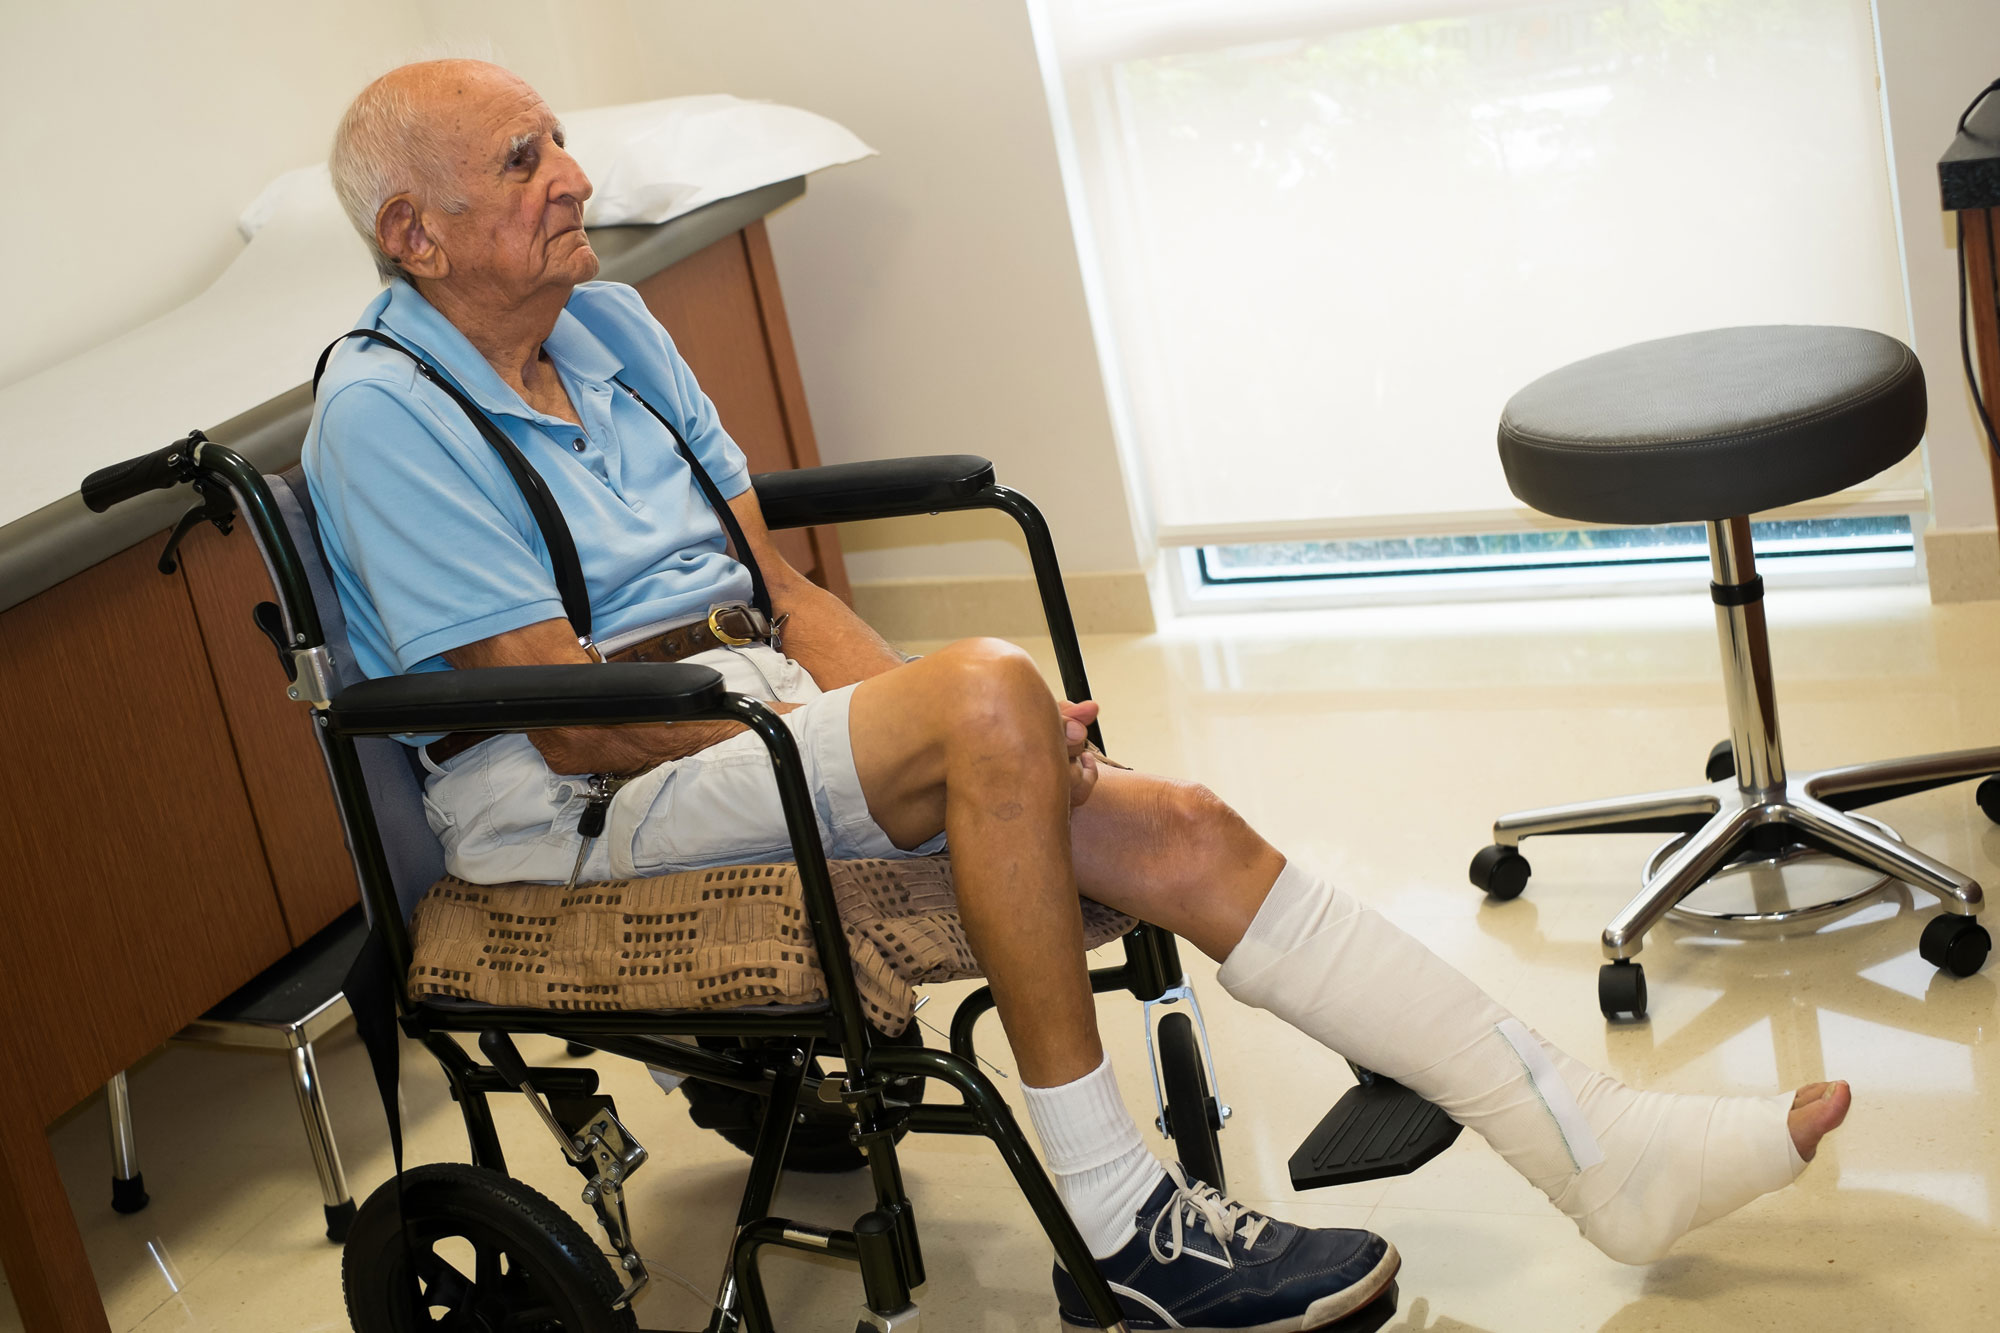 Elderly man sitting in a wheelchair in a clinical setting.